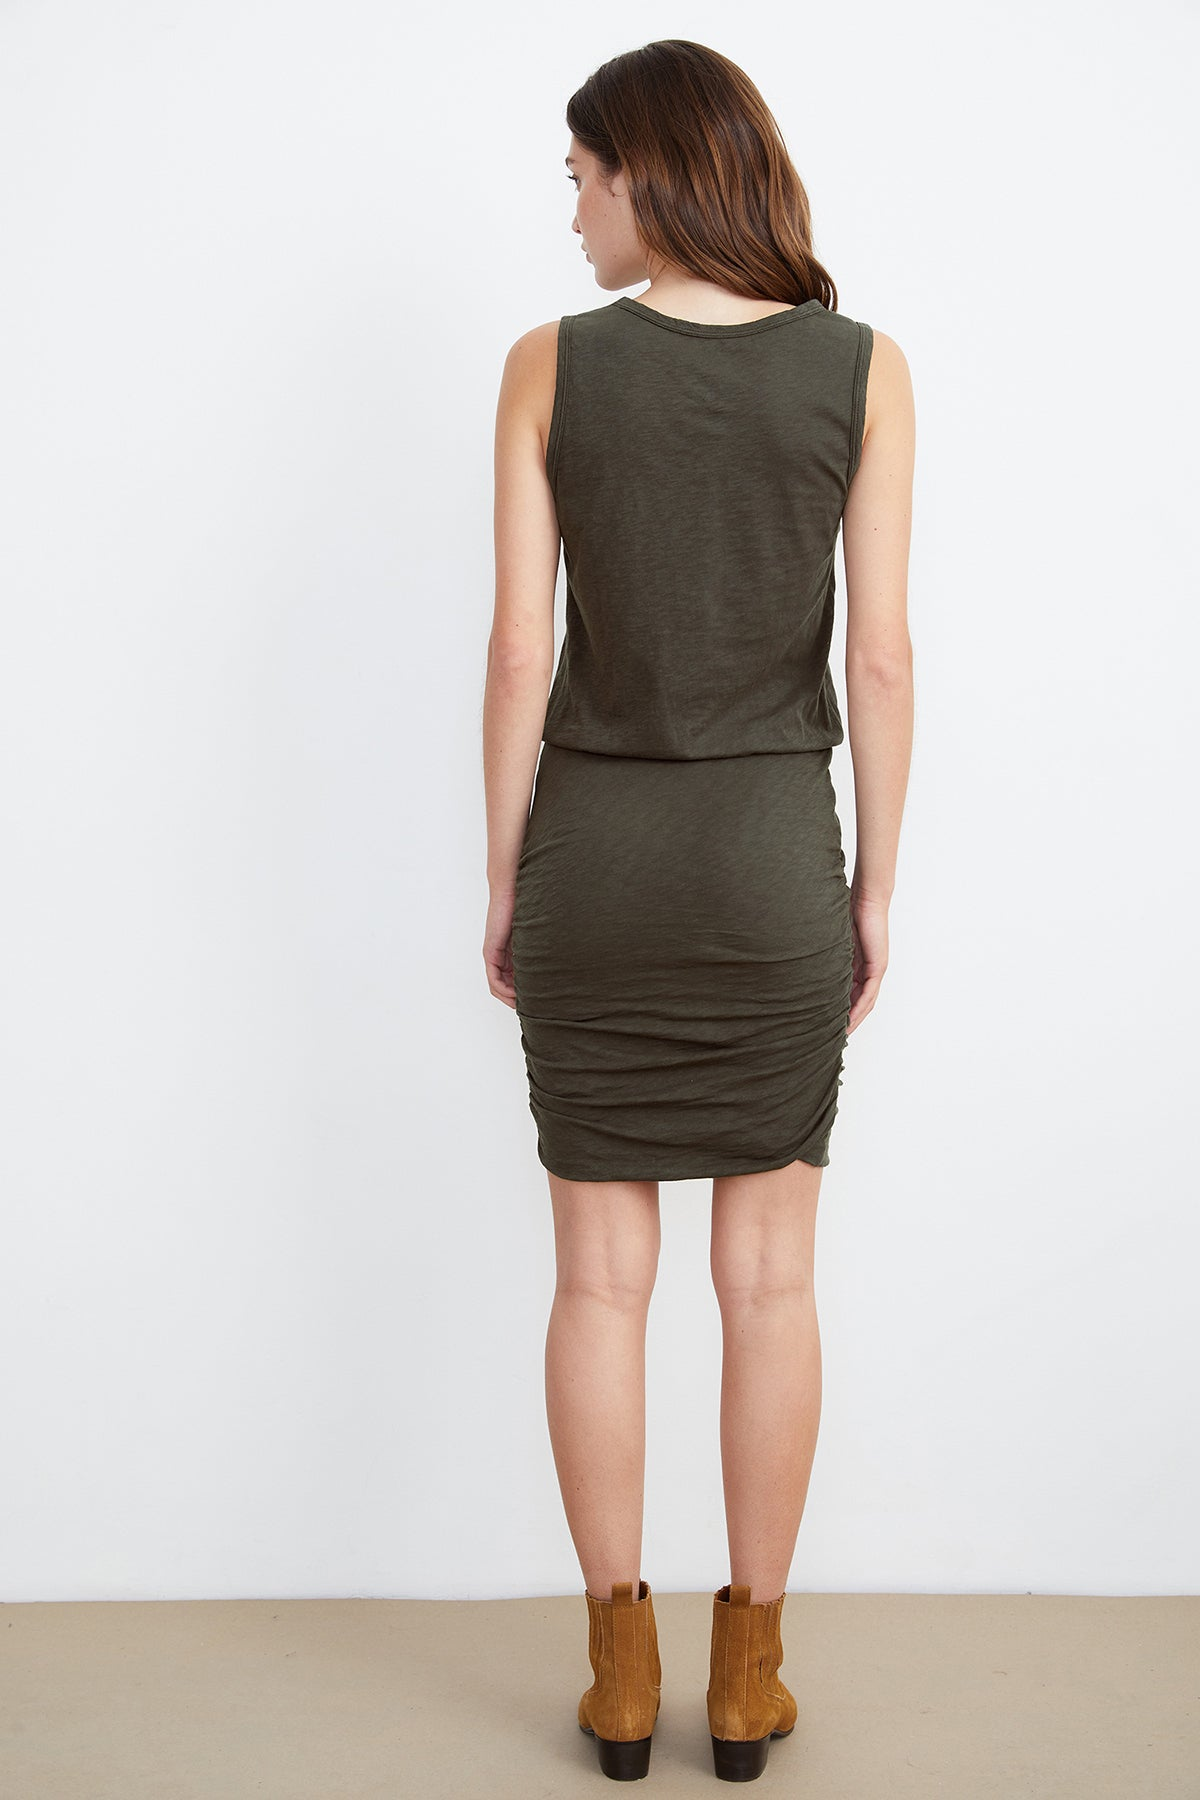 MACEY COTTON SLUB MIX TANK DRESS